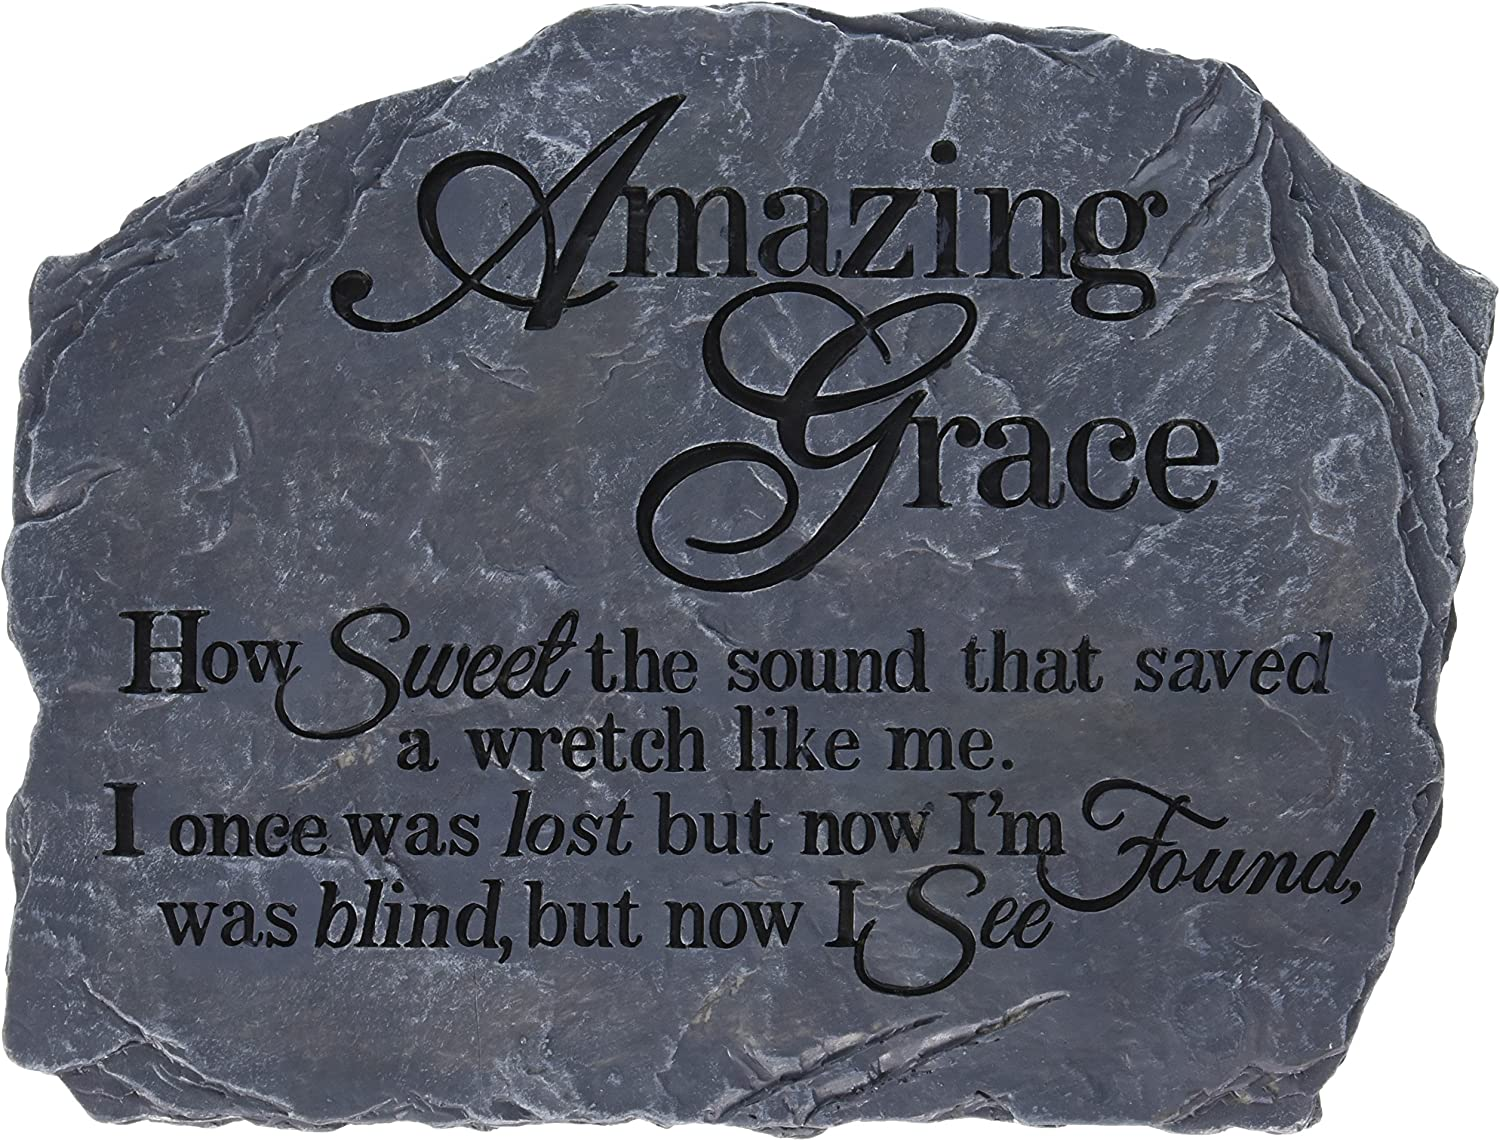 Carson Home Accents Garden Stone, 10.5-Inch by 8-Inch, Amazing Grace